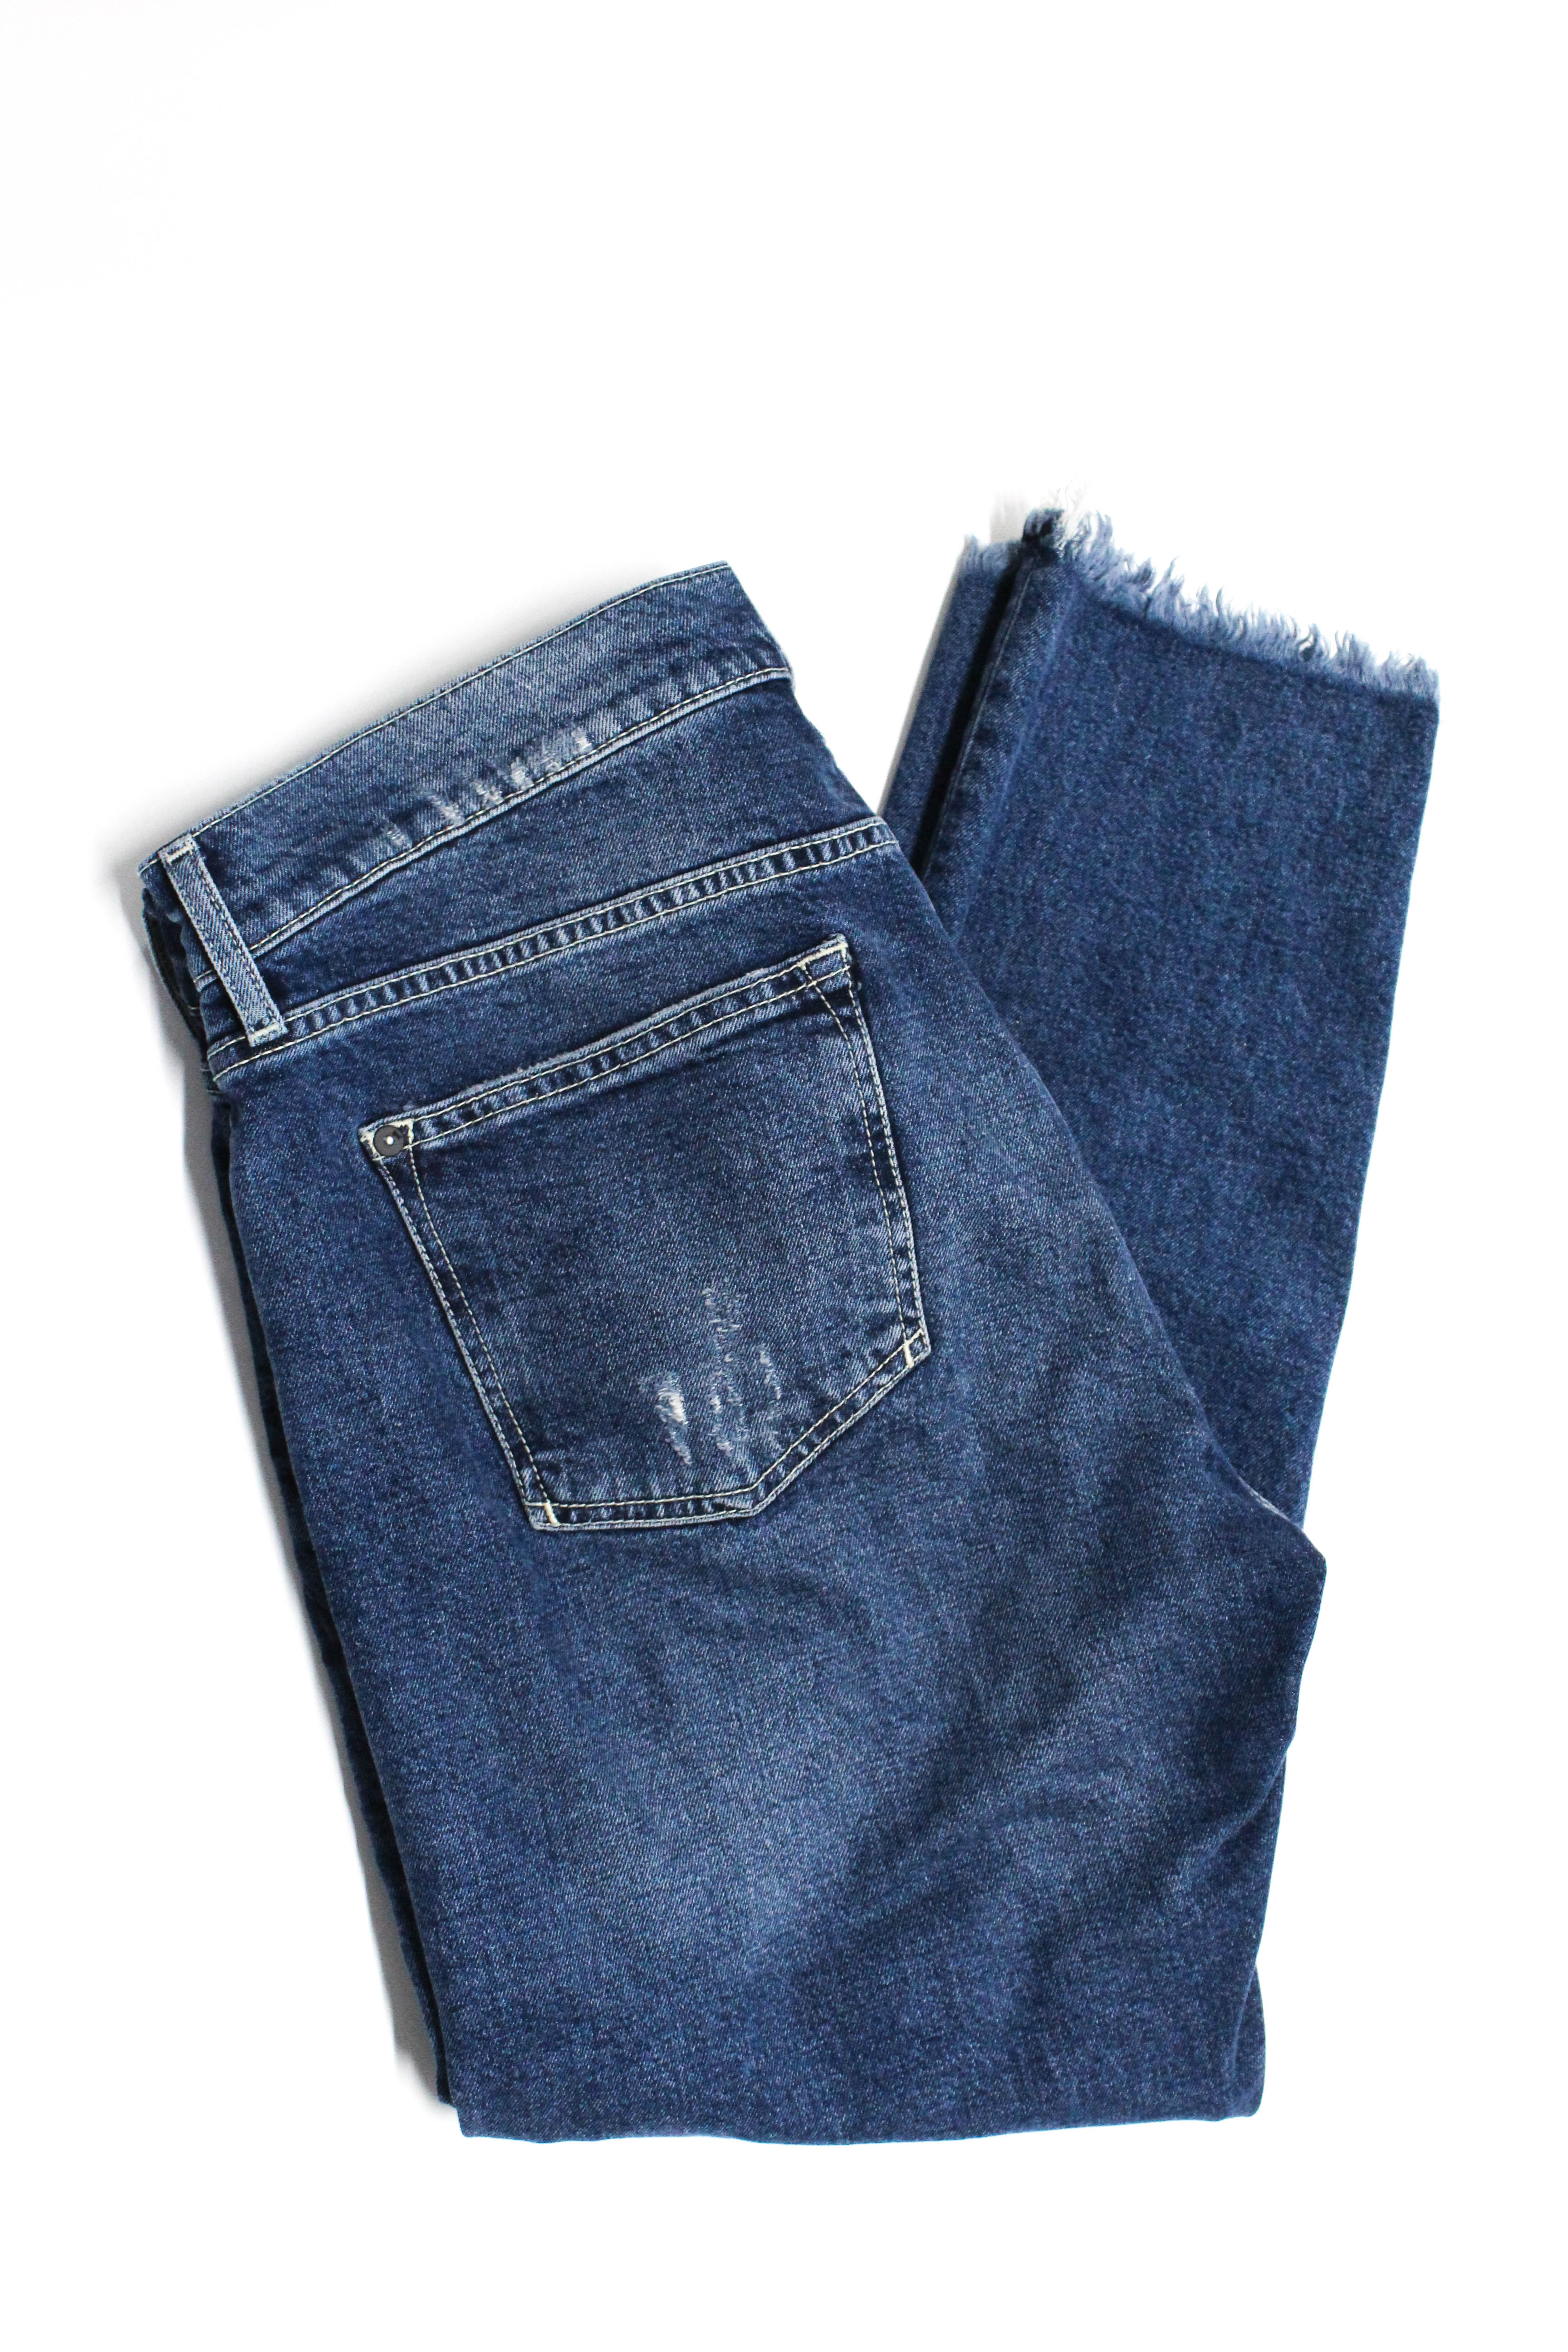 5864ad75d58 Pilcro and the Letterpress Anthropologie Womens Fringe Jeans Blue Cotton  Size 30